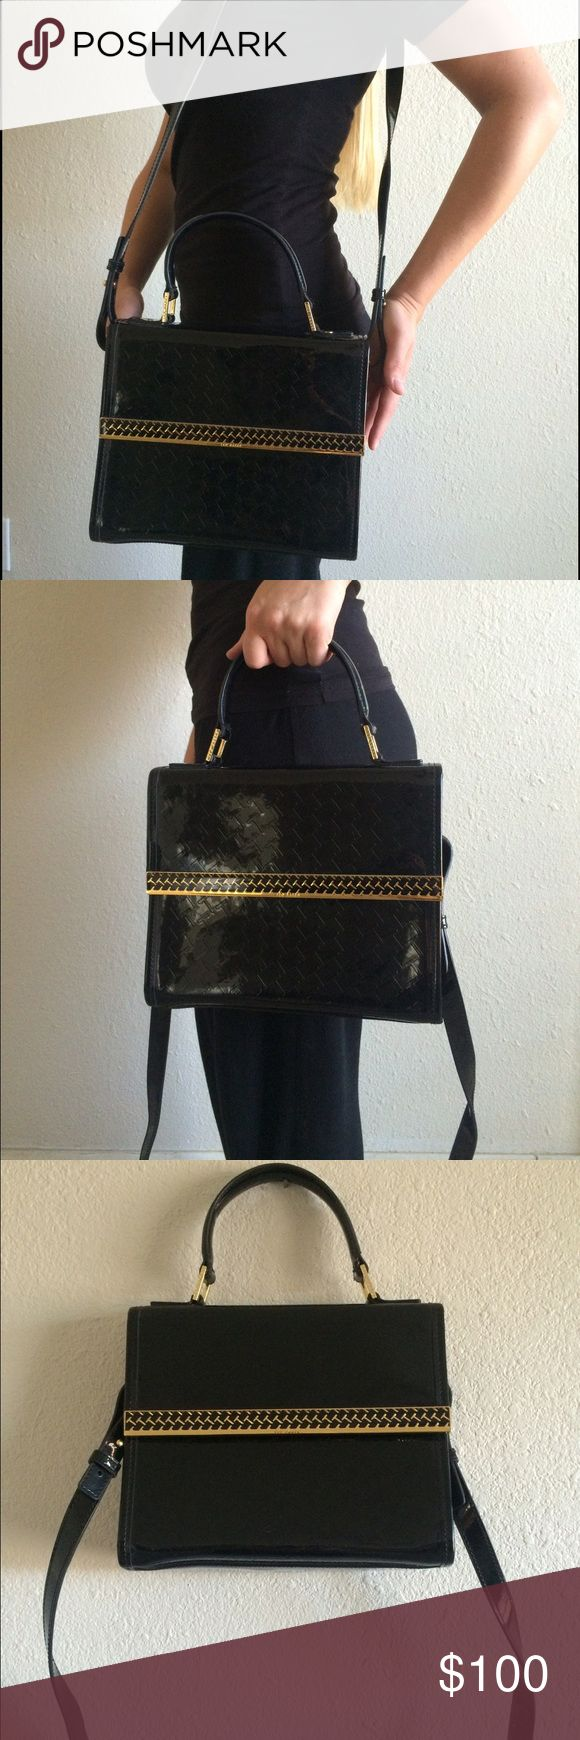 Patent Leather Black Ted Baker Purse This retro Ted Baker purse comes with a detachable shoulder strap. Ted Baker's signature T is patterned on the entire purse. Although purse does not have tags, it has never been used. Small to medium sized. Ted Baker Bags Crossbody Bags